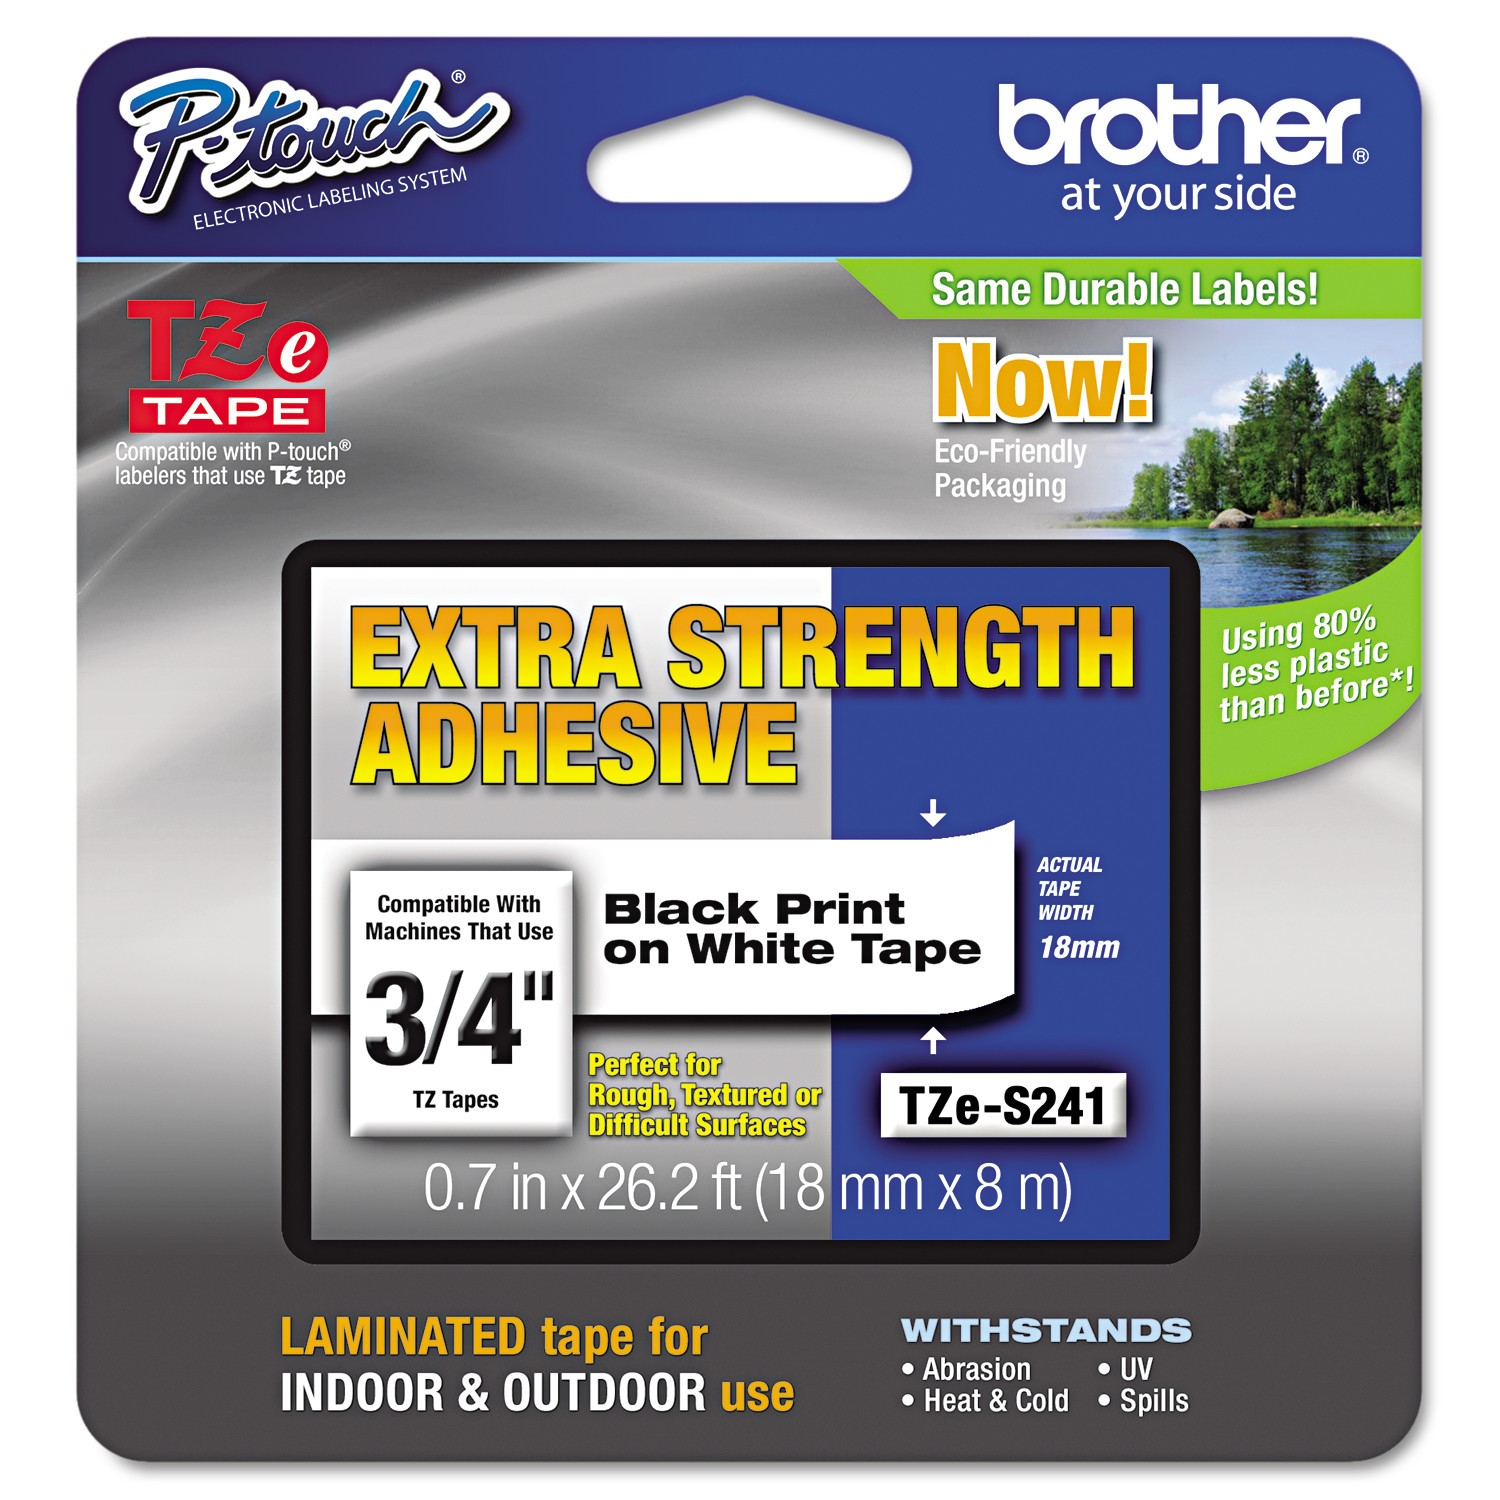 "Brother TZES241 P-Touch TZe Extra-Strength Adhesive Laminated Labeling Tape, 3/4""w, Black on White"